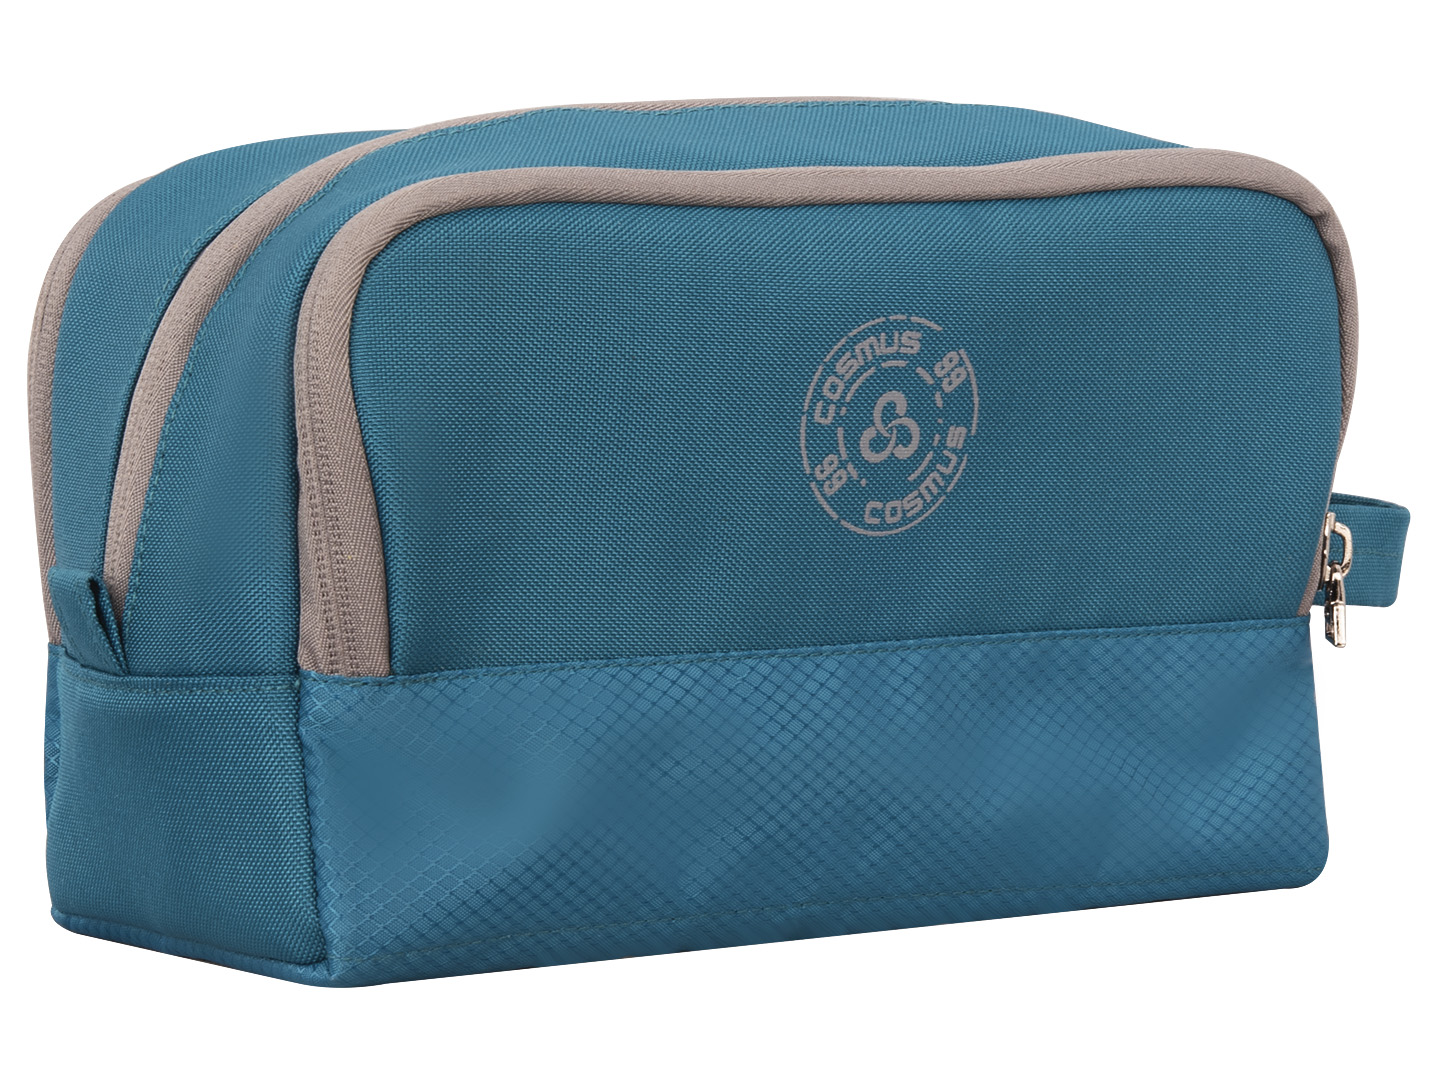 Carryon travel T.Green toiletry pouch bag